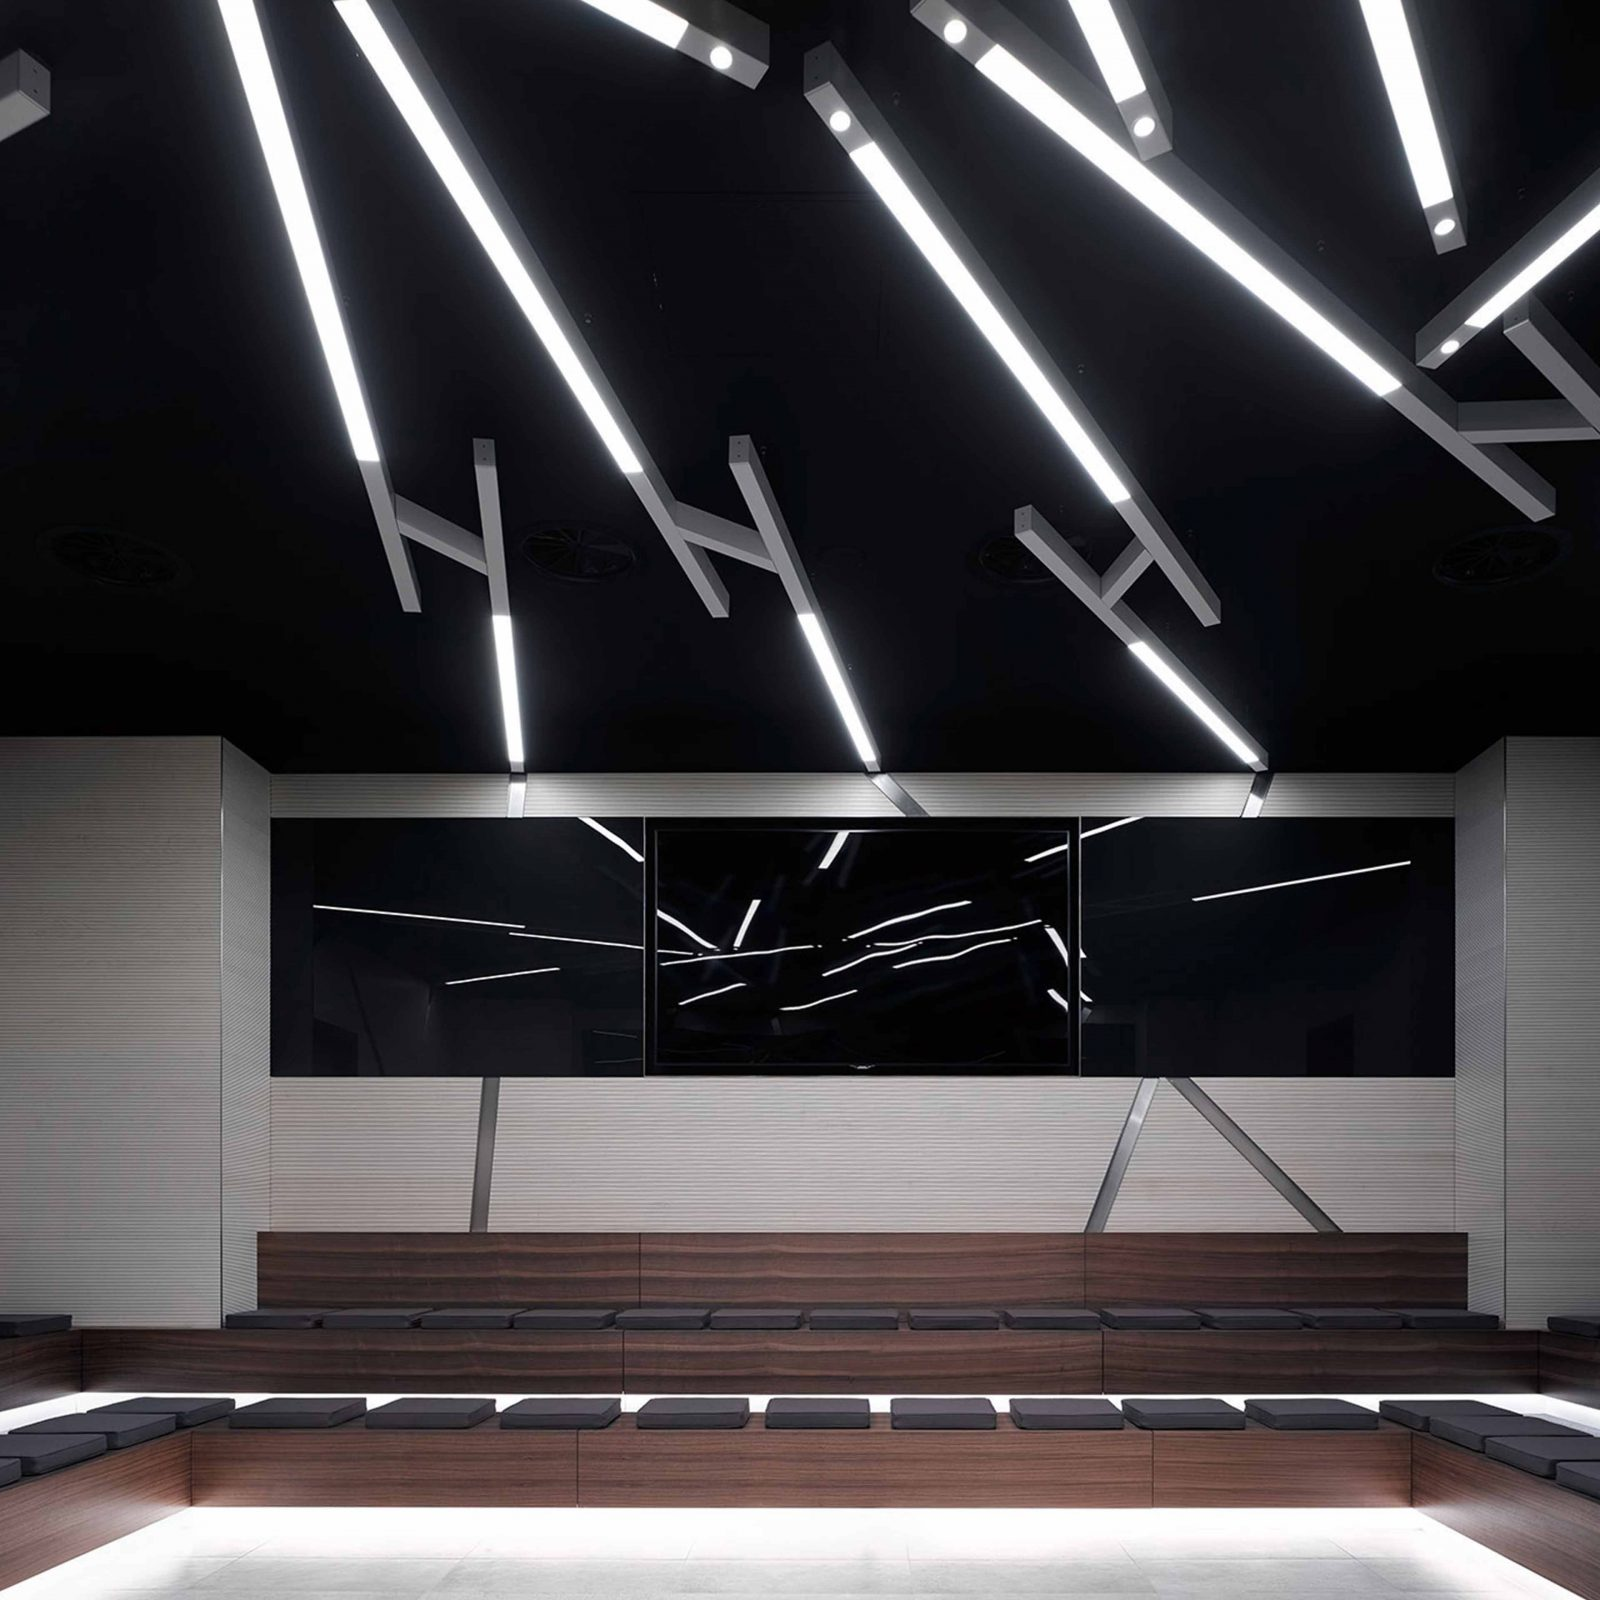 Feature Black Ceiling Lighting Design Workplace Auditorium Studio N